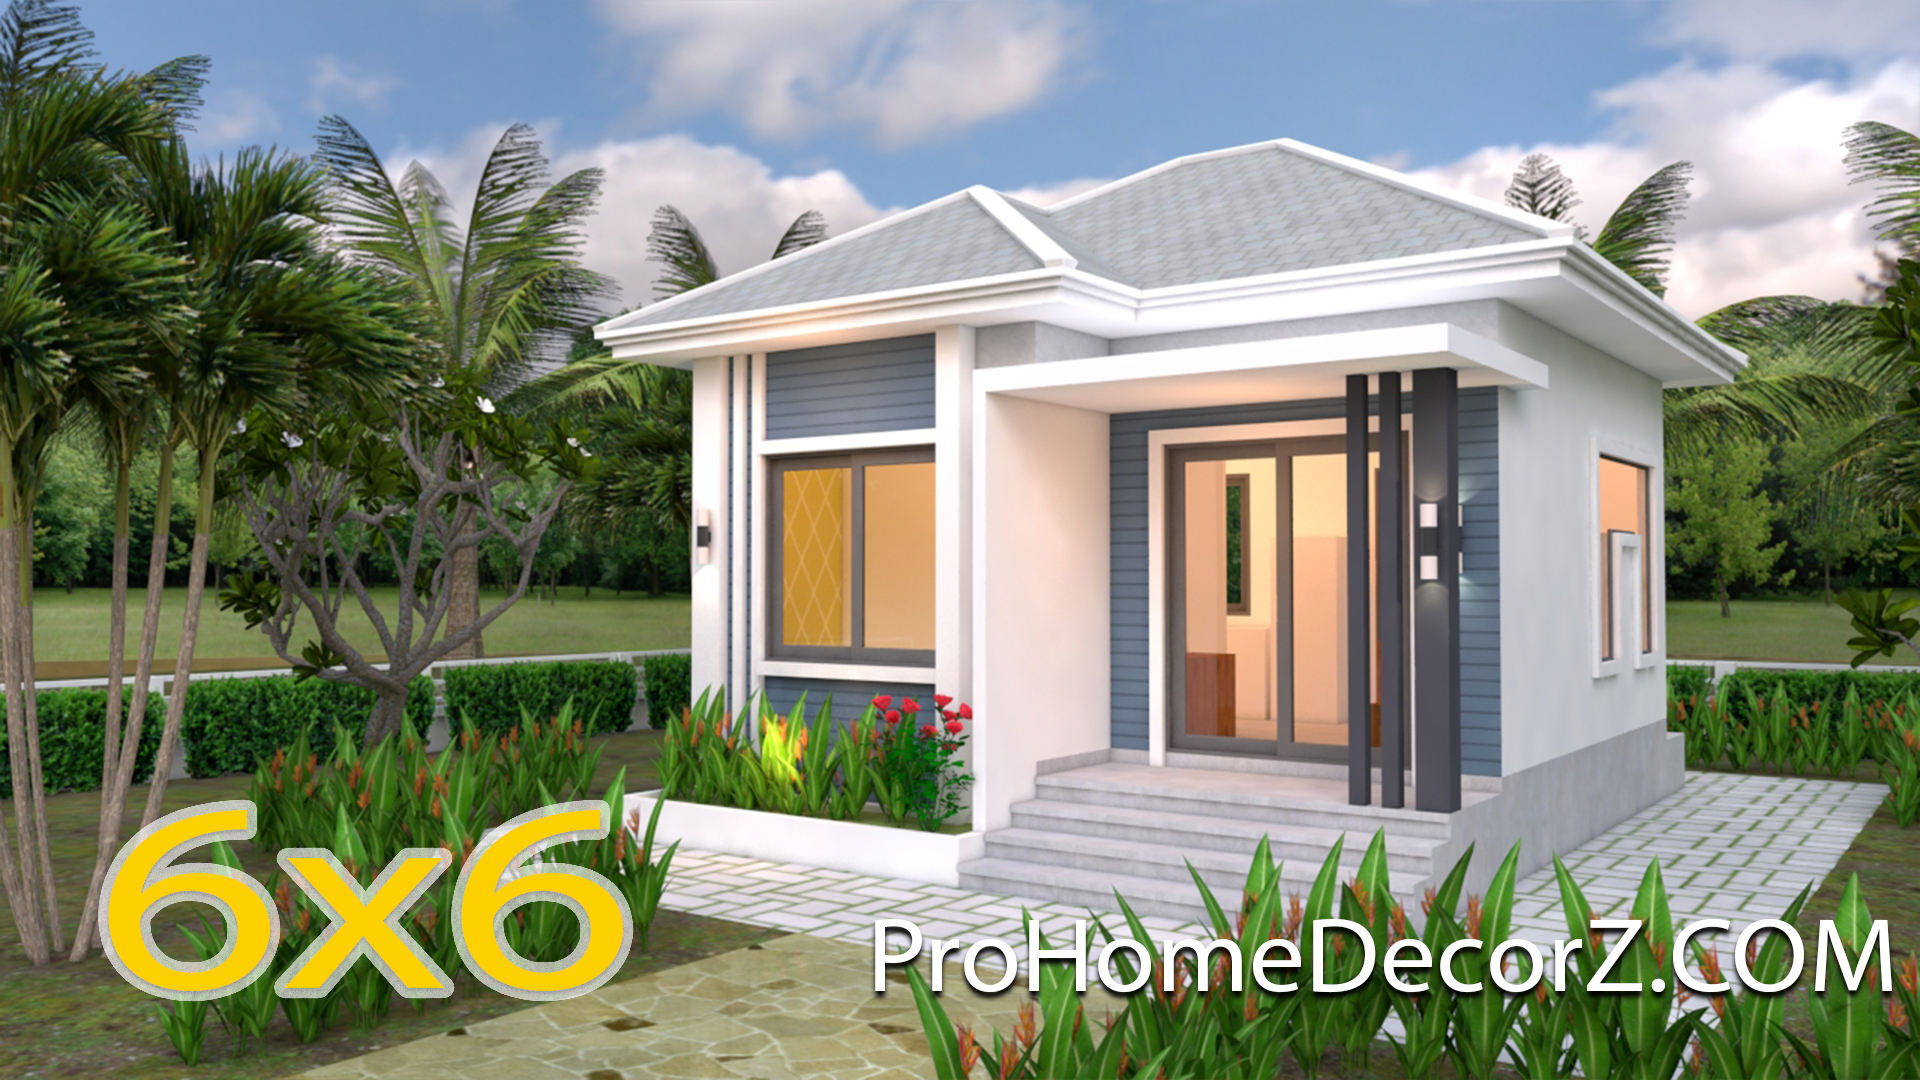 Small Bungalow House 6x6 Meter 20x20 Feet Pro Home Decors